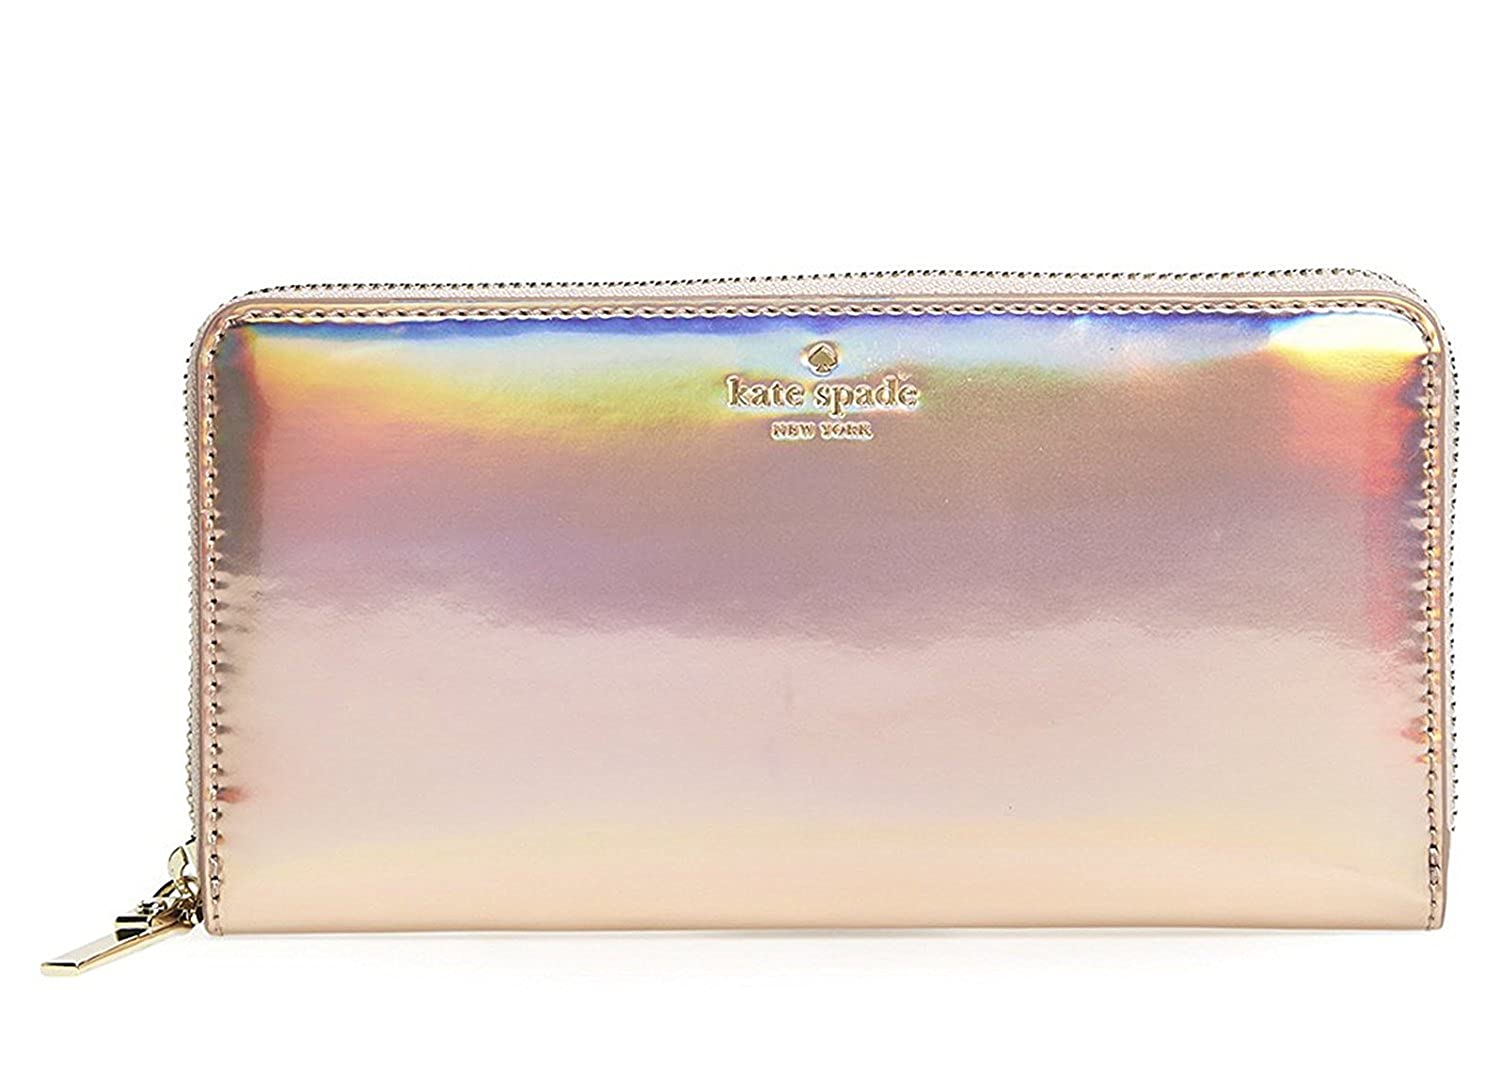 Kate Spade New York Lacey財布ローズゴールド B01MS05L53